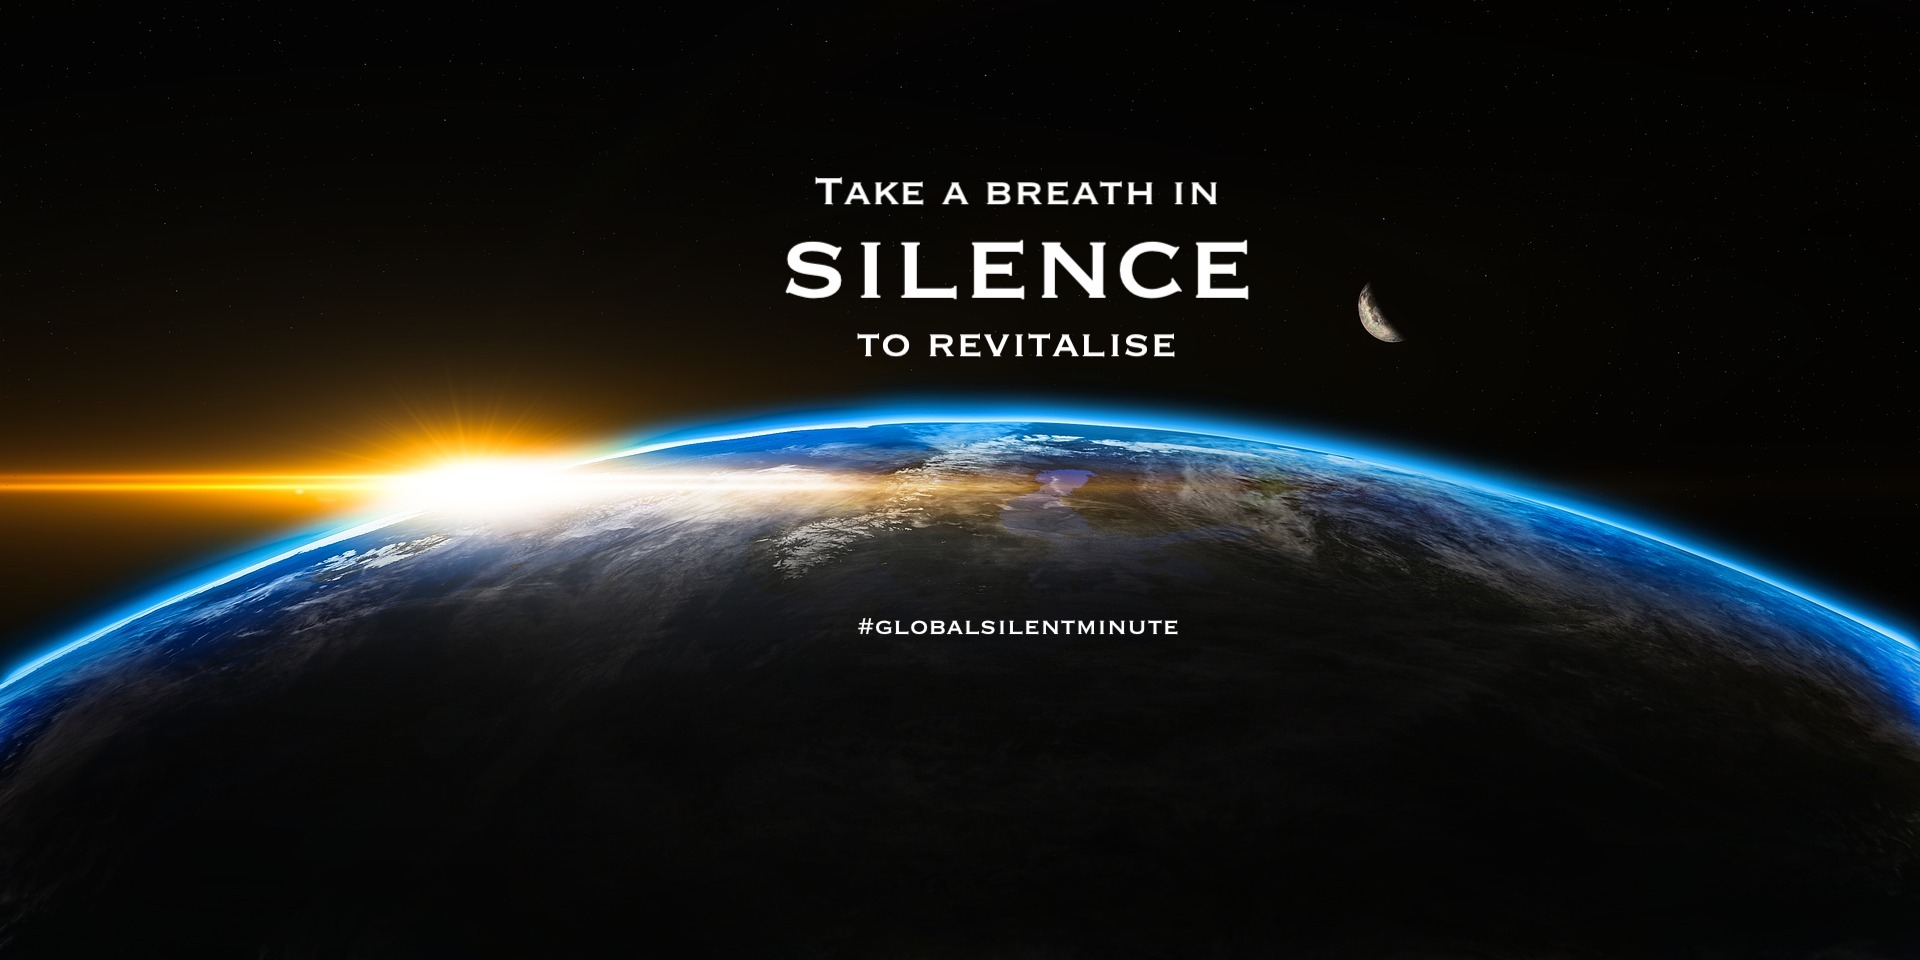 21.Take a breath in Silence to revitalise